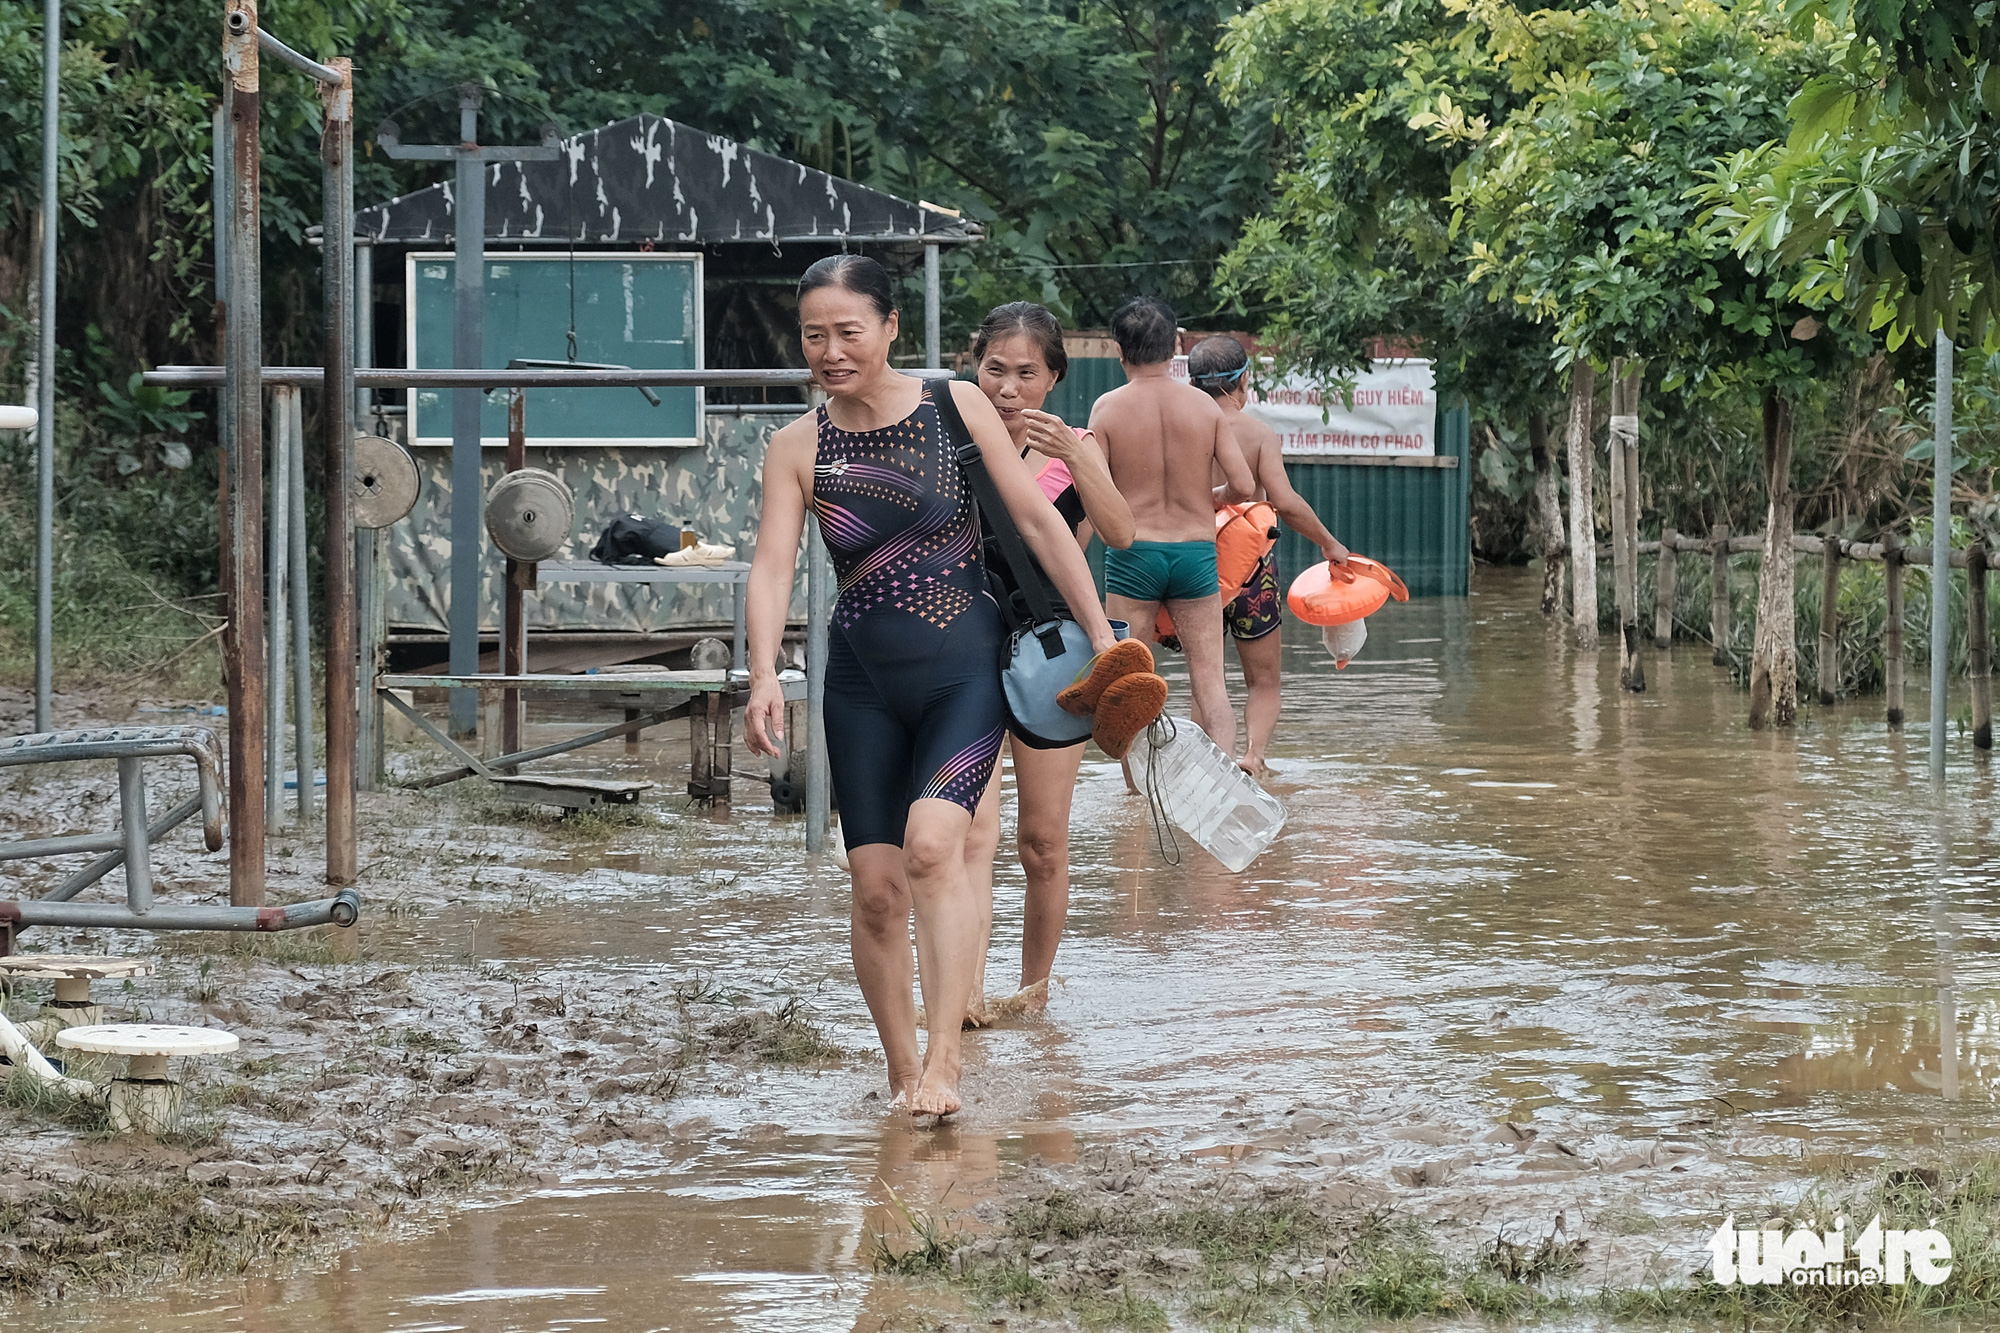 A woman uses a plastic canister as a lifebuoy while swimming in the Hong River in Hanoi, August 22, 2020. Photo: Mai Thuong / Tuoi Tre